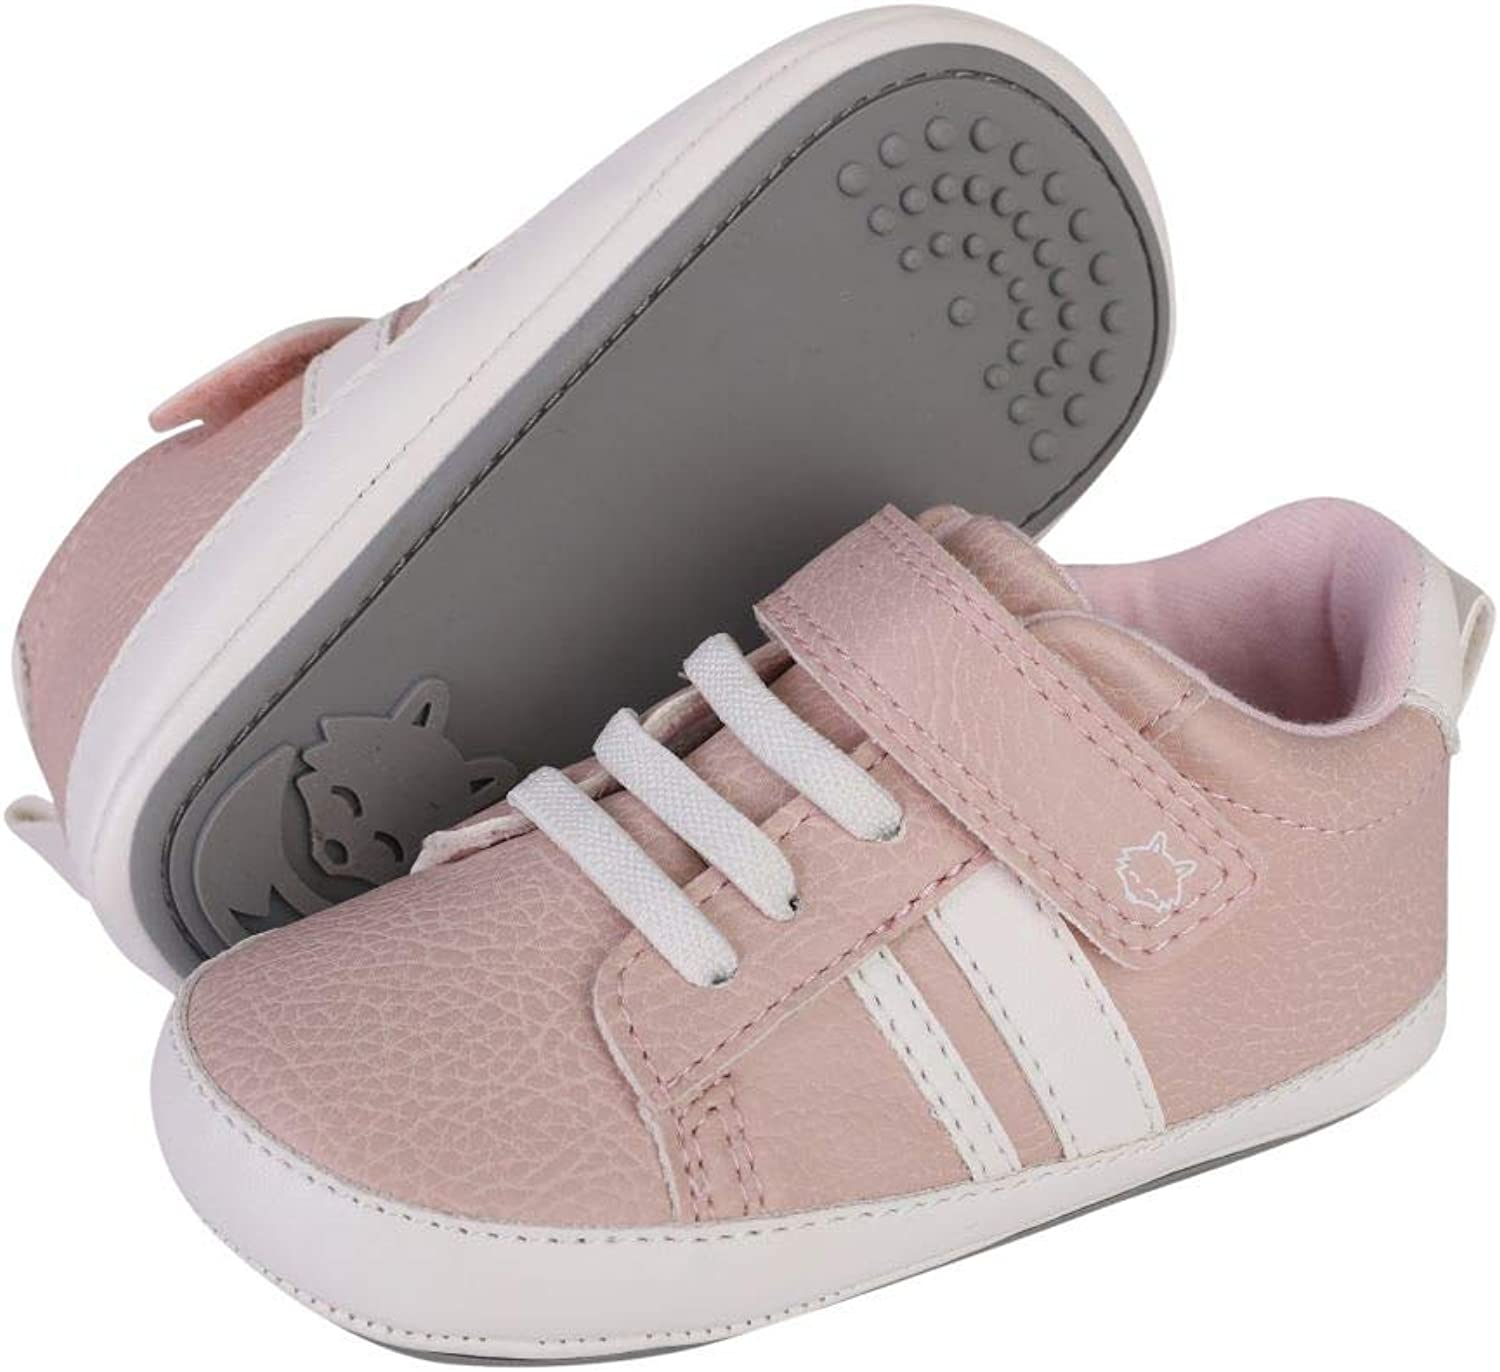 HIPFOX Baby Anti-Slip Rubber Sole Shoes Soft Indoor Sneakers for First Walkers Infants /& Crawlers Ages 6-24 Months